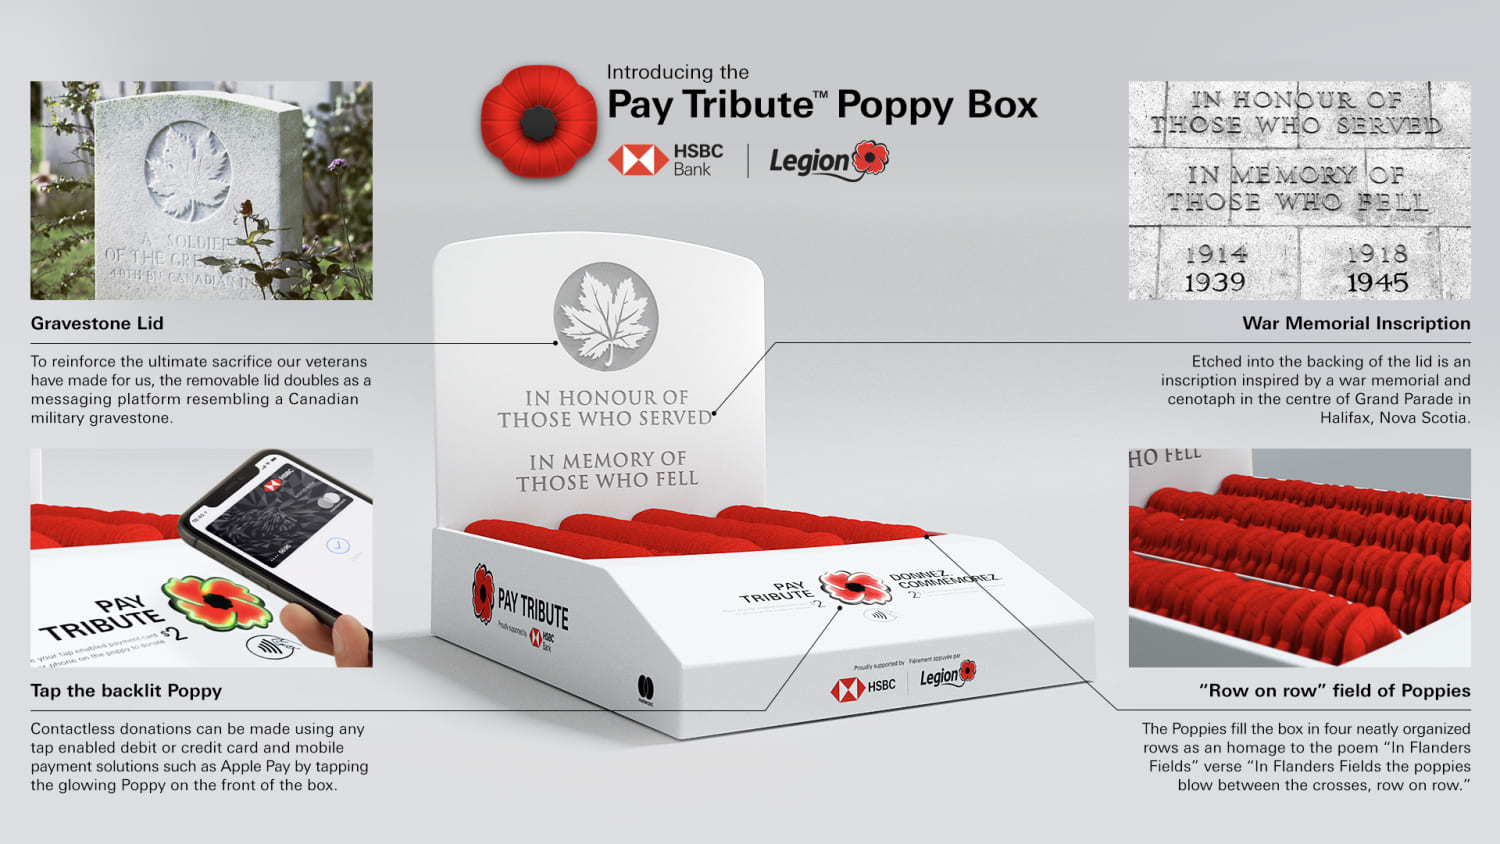 """Grey background with Pay Tribute box containing poppies. Words on the box """"In honour of those who served. In memory of those who fell. Four squares on both sides of the page with images of a tombstone, poppies and a cellphone with Pay Tribute app."""